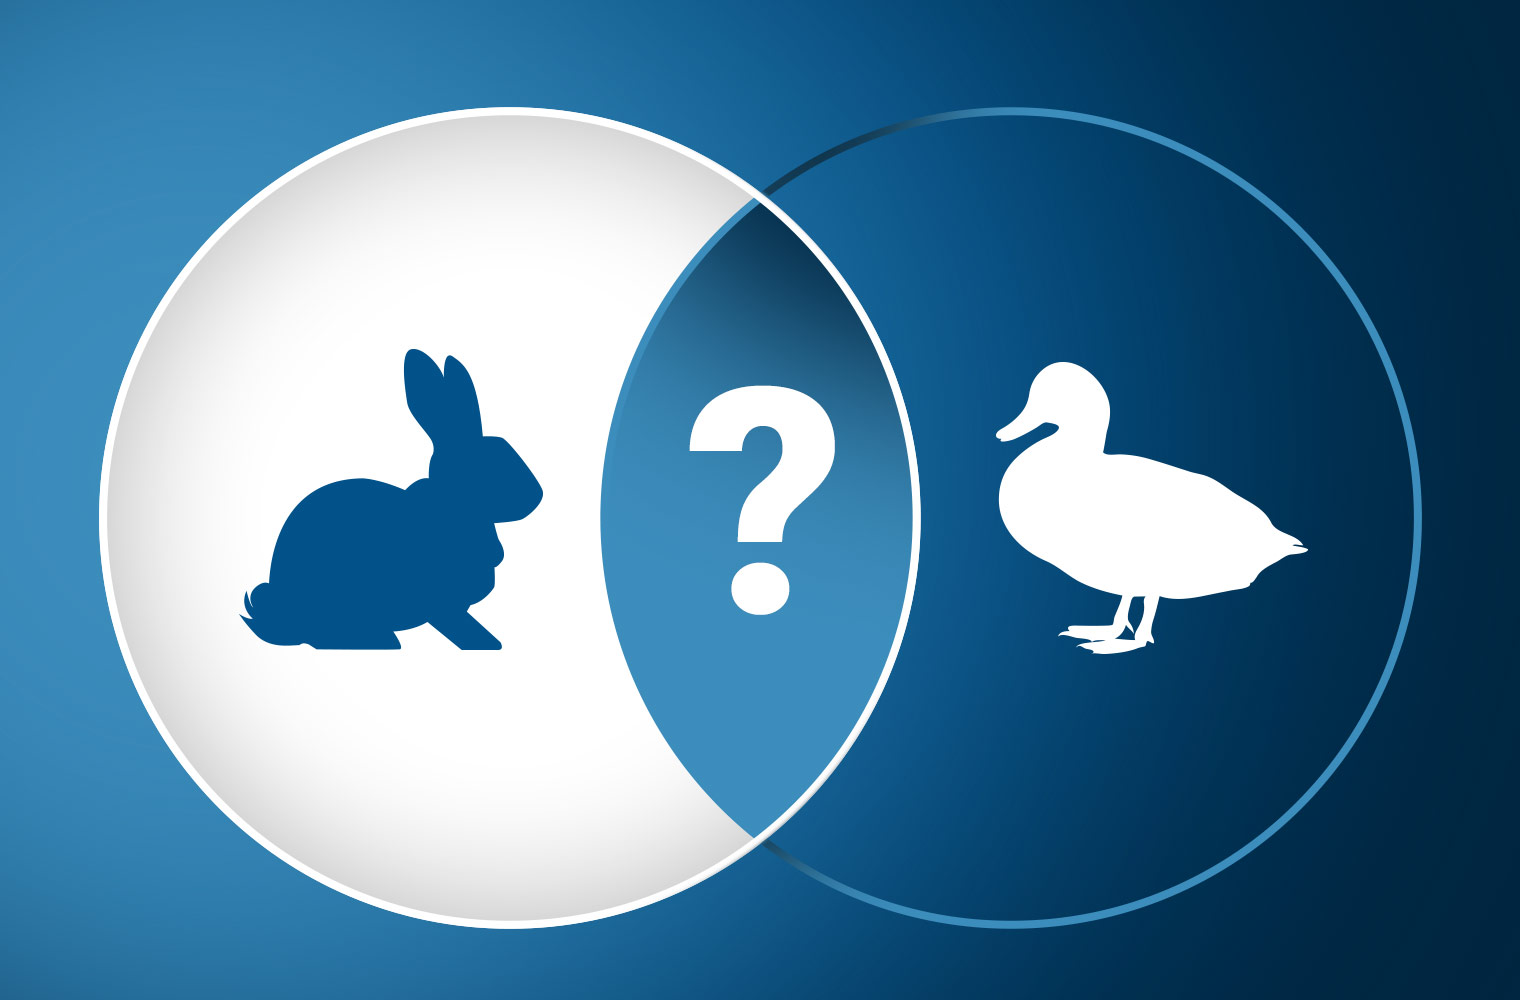 Feature Image You Can't Unsee the Rabbit